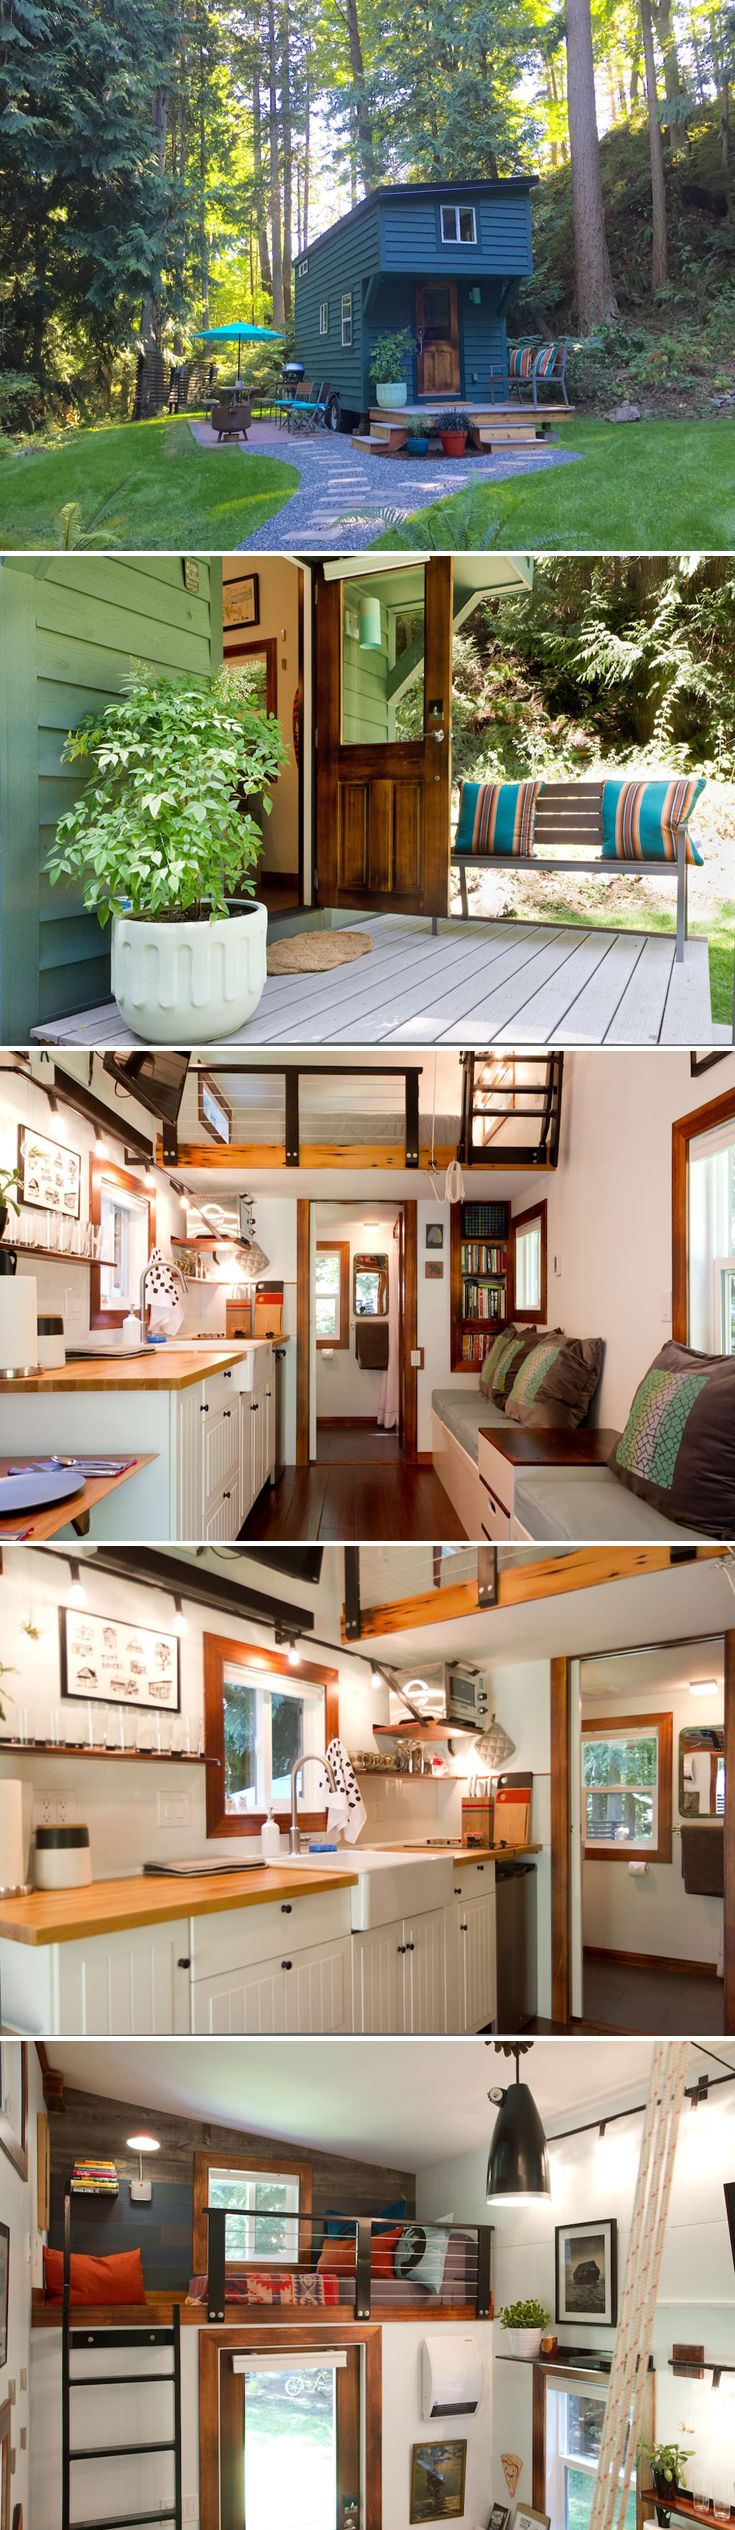 This 144 sq.ft. tiny house is an Airbnb rental located on Guemes Island in Washington State. Sleep up to three people and starts at $119/night.